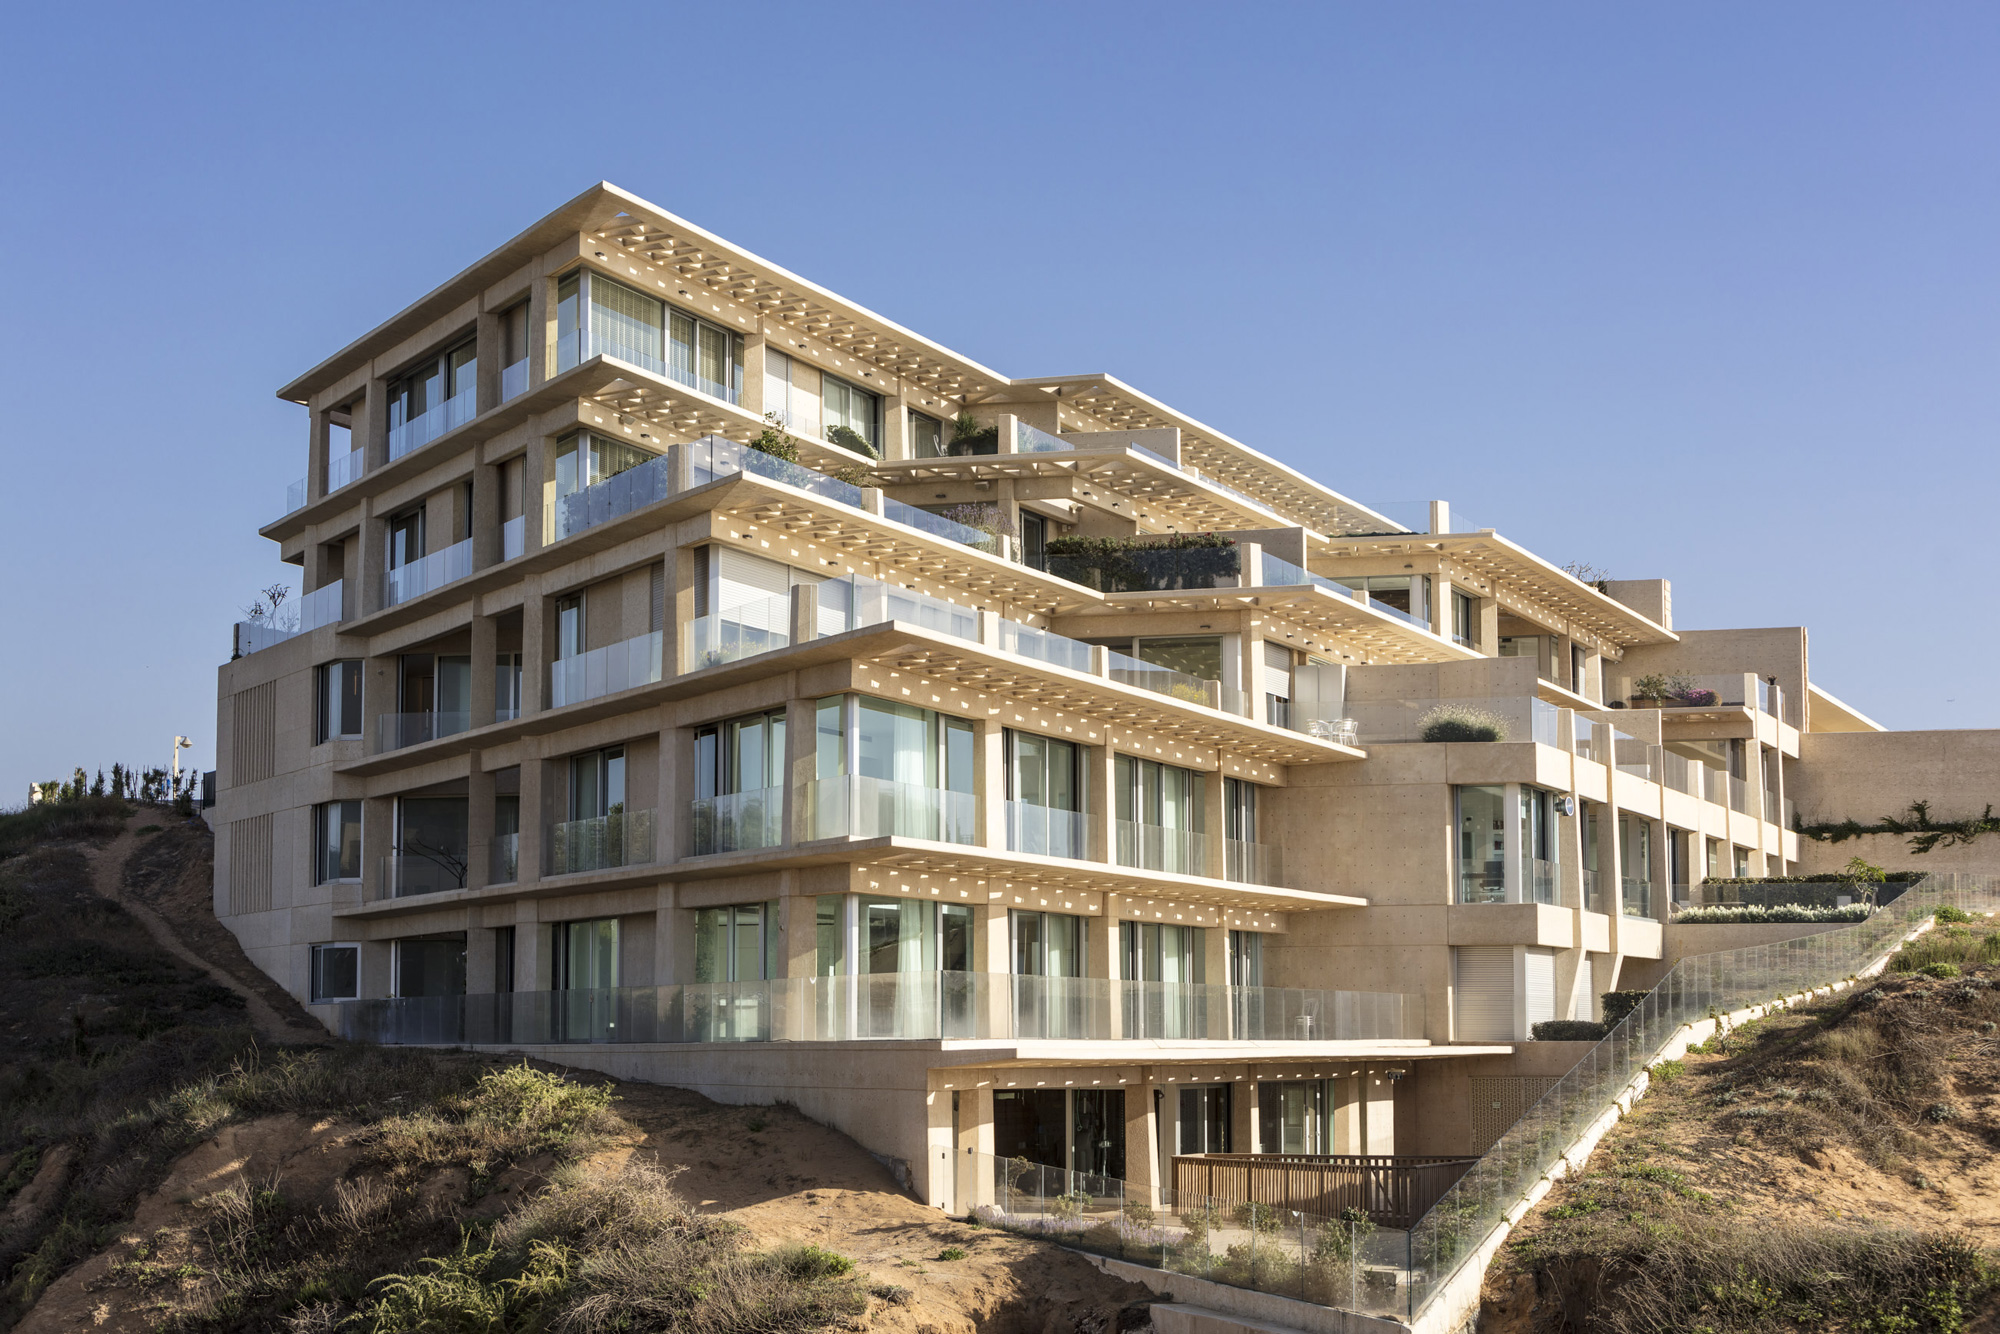 The newly completed Arsuf Residence is located on a cliff overlooking the sea.